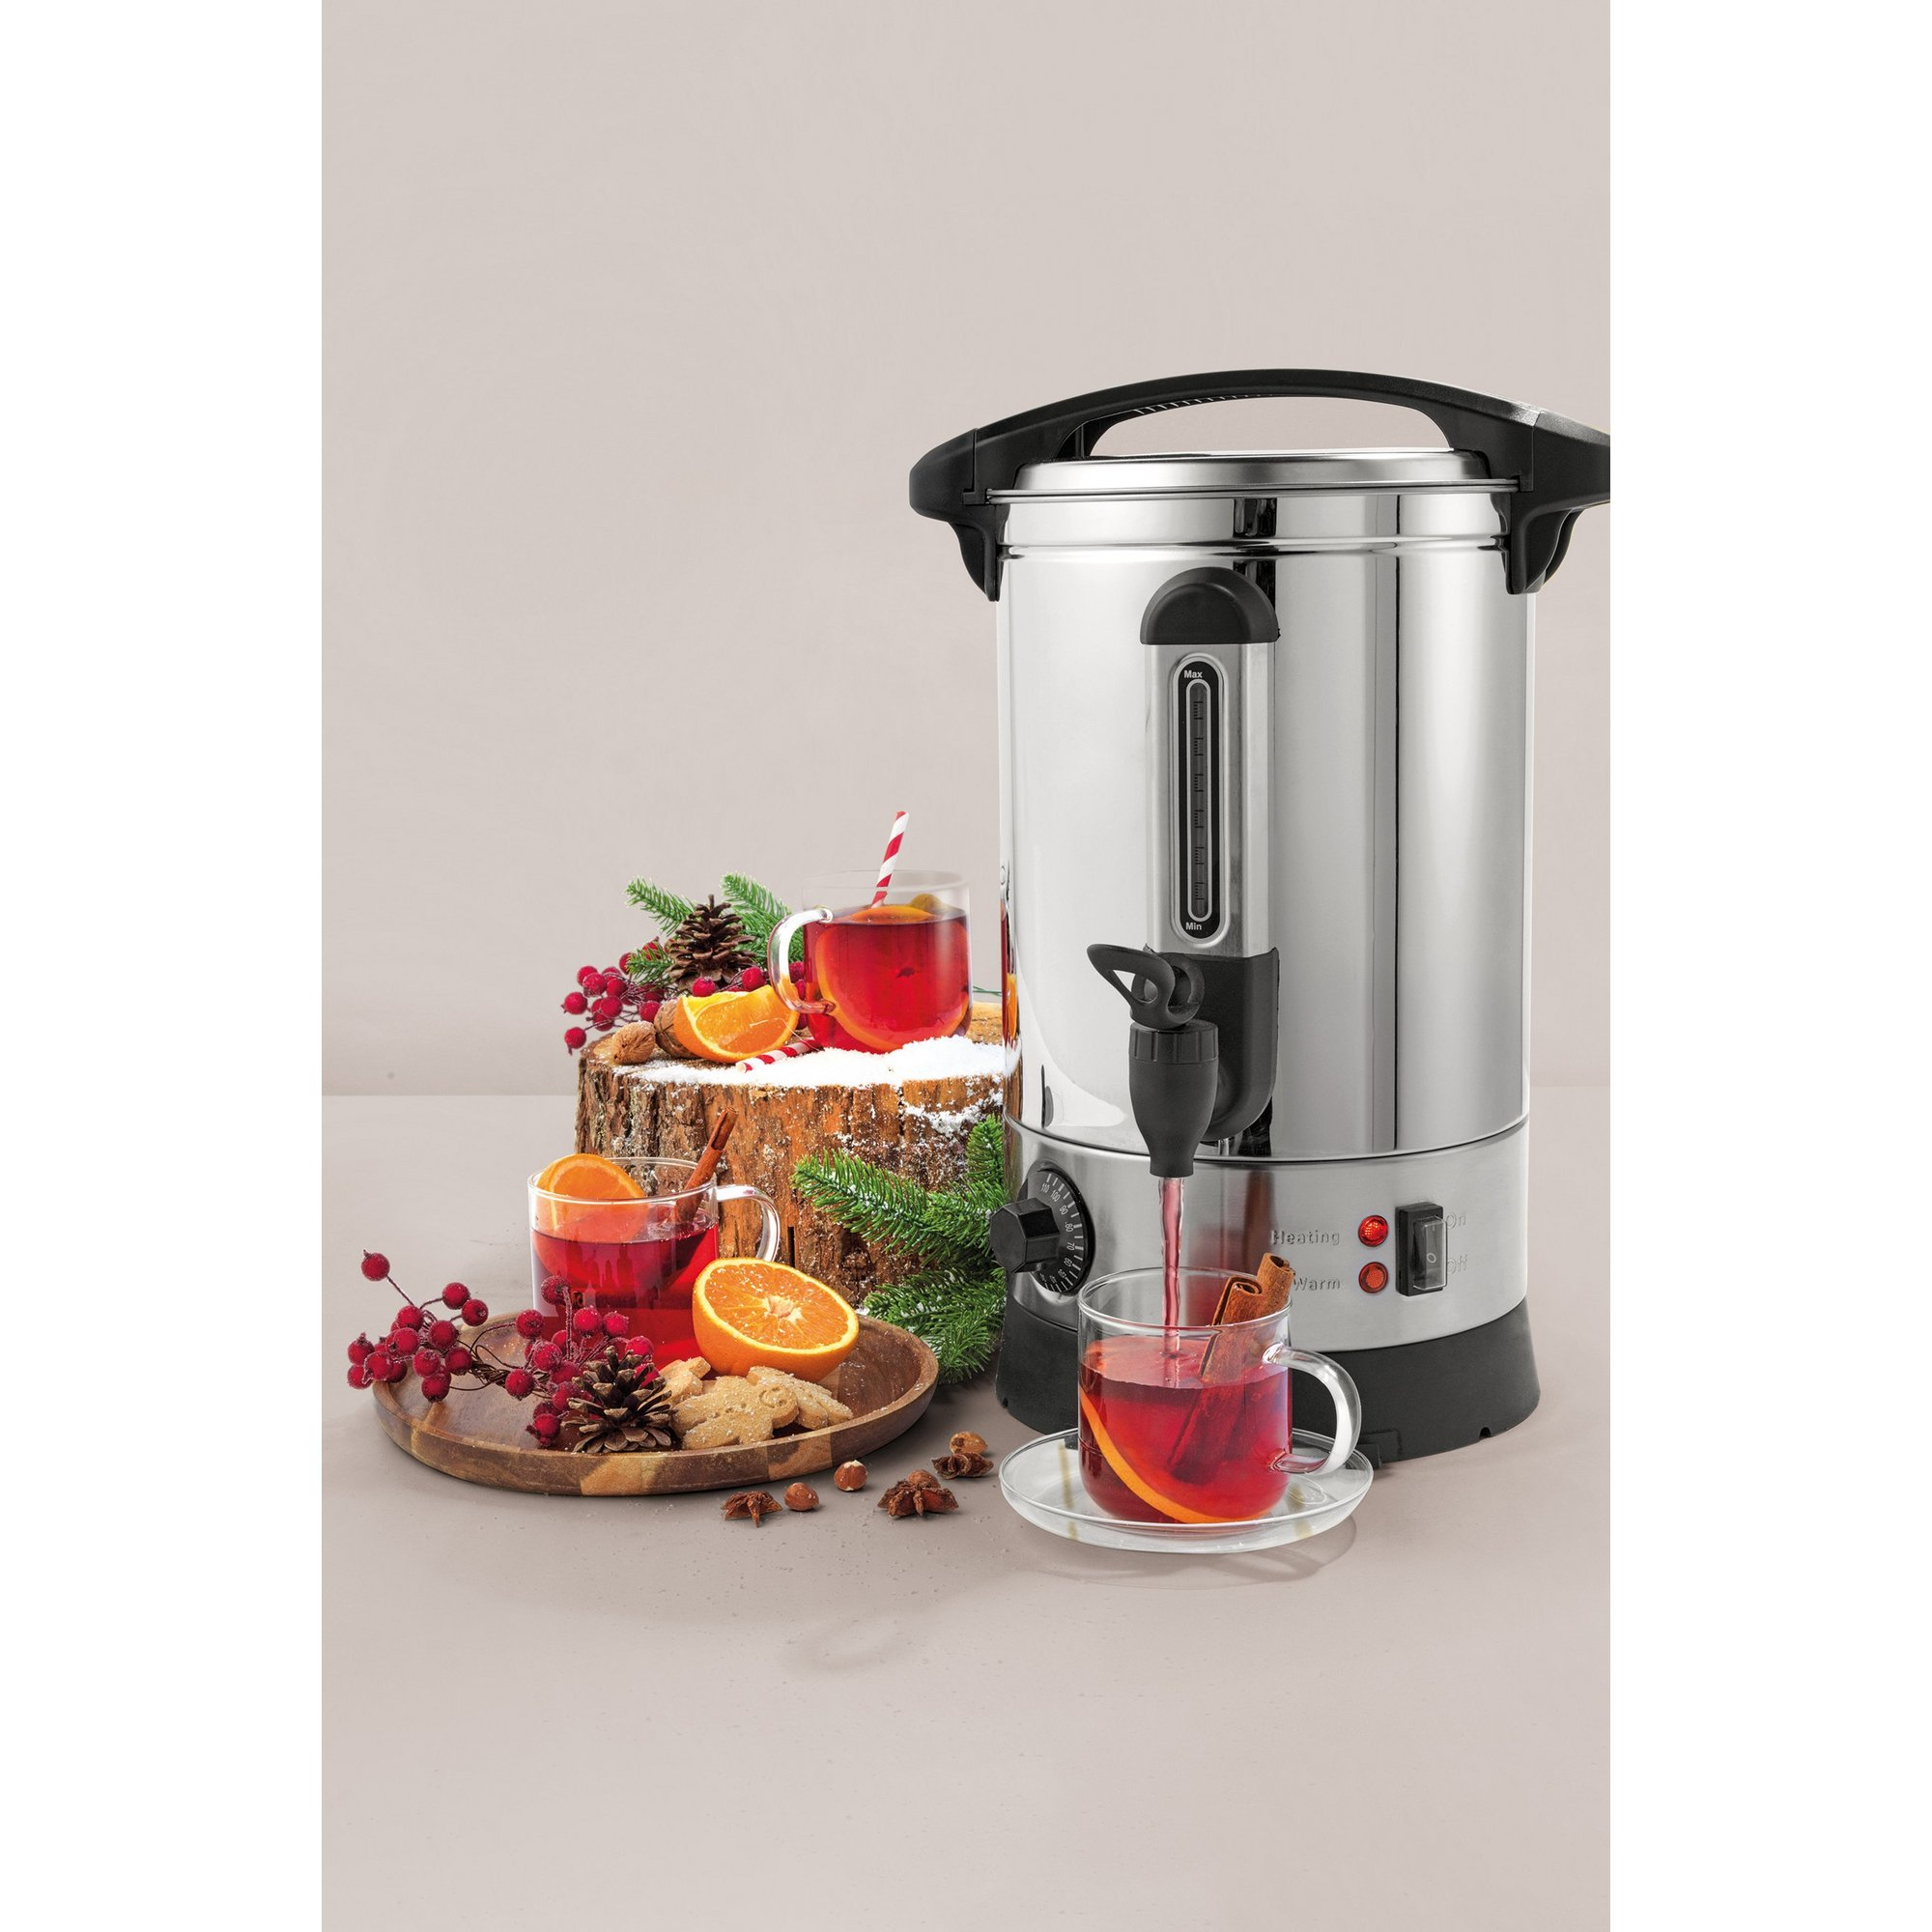 Image of Giles and Posner 7 Litre Hot Water&#44 Cider and Mulled Wine Urn